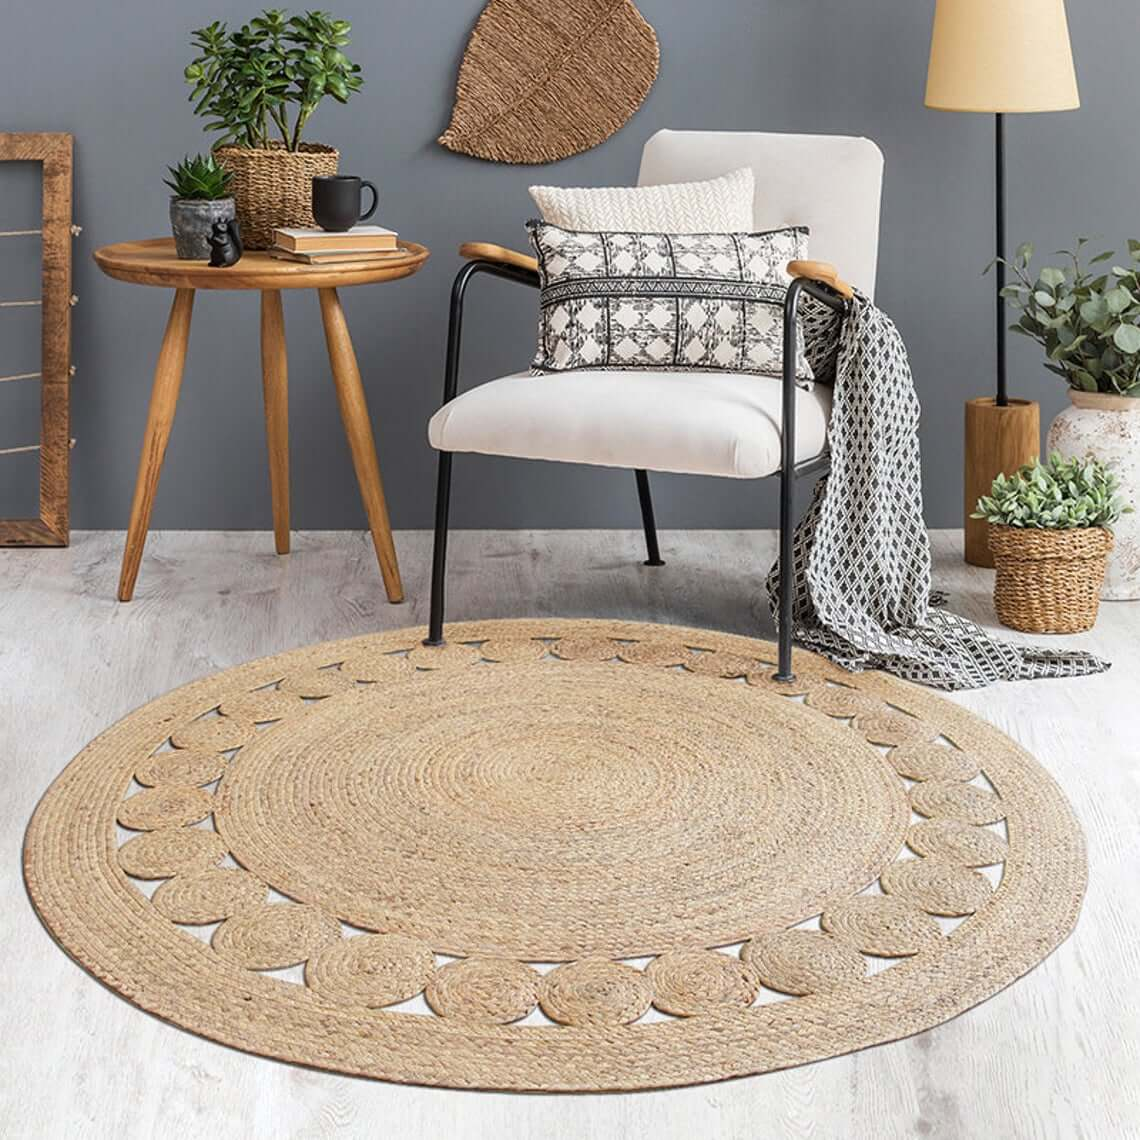 Stunning Round Seagrass Decorative Area Rug